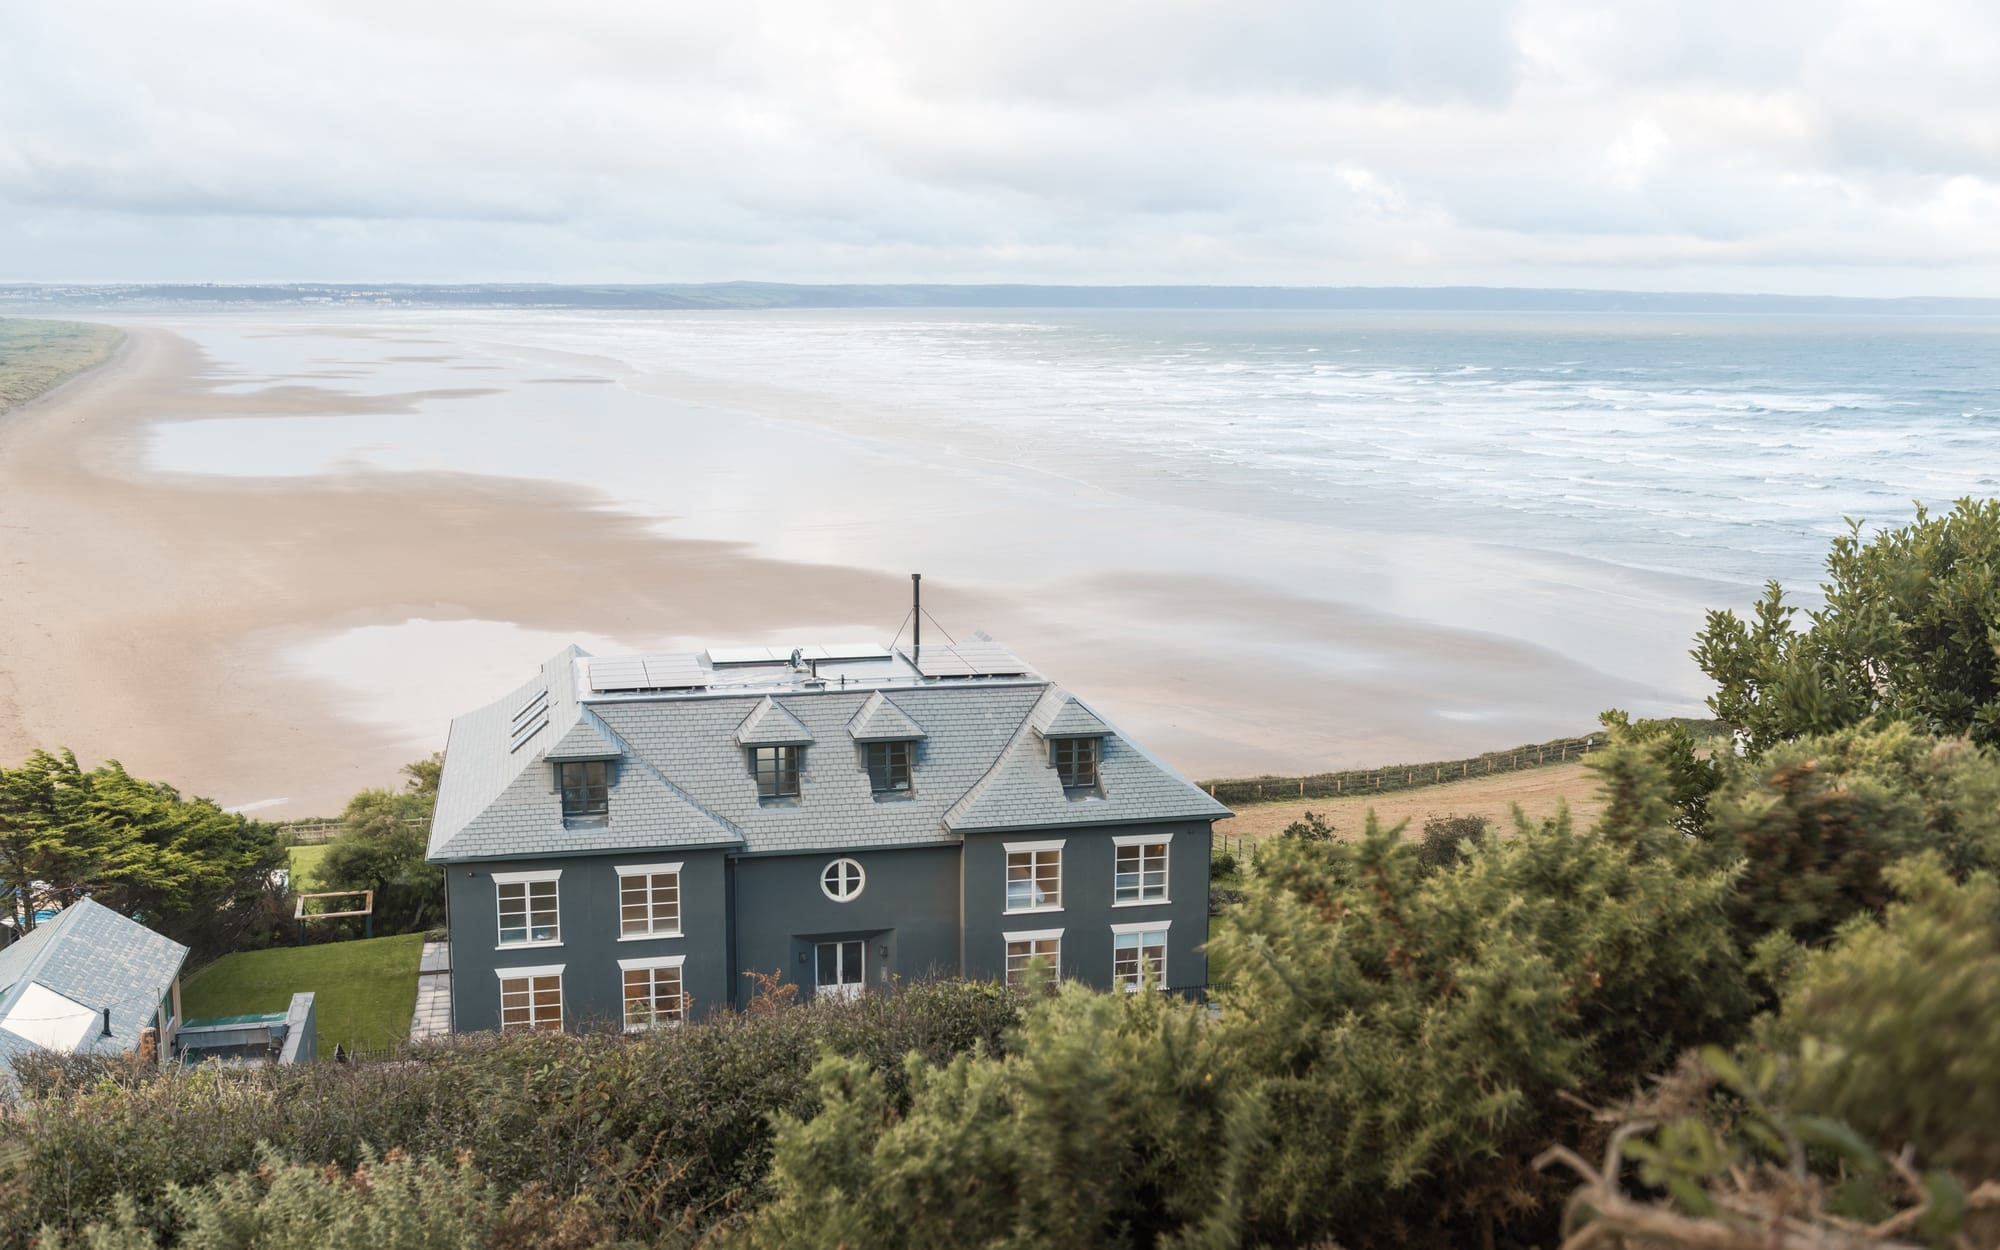 The Chalet Saunton Luxury Self Catering Apartments In